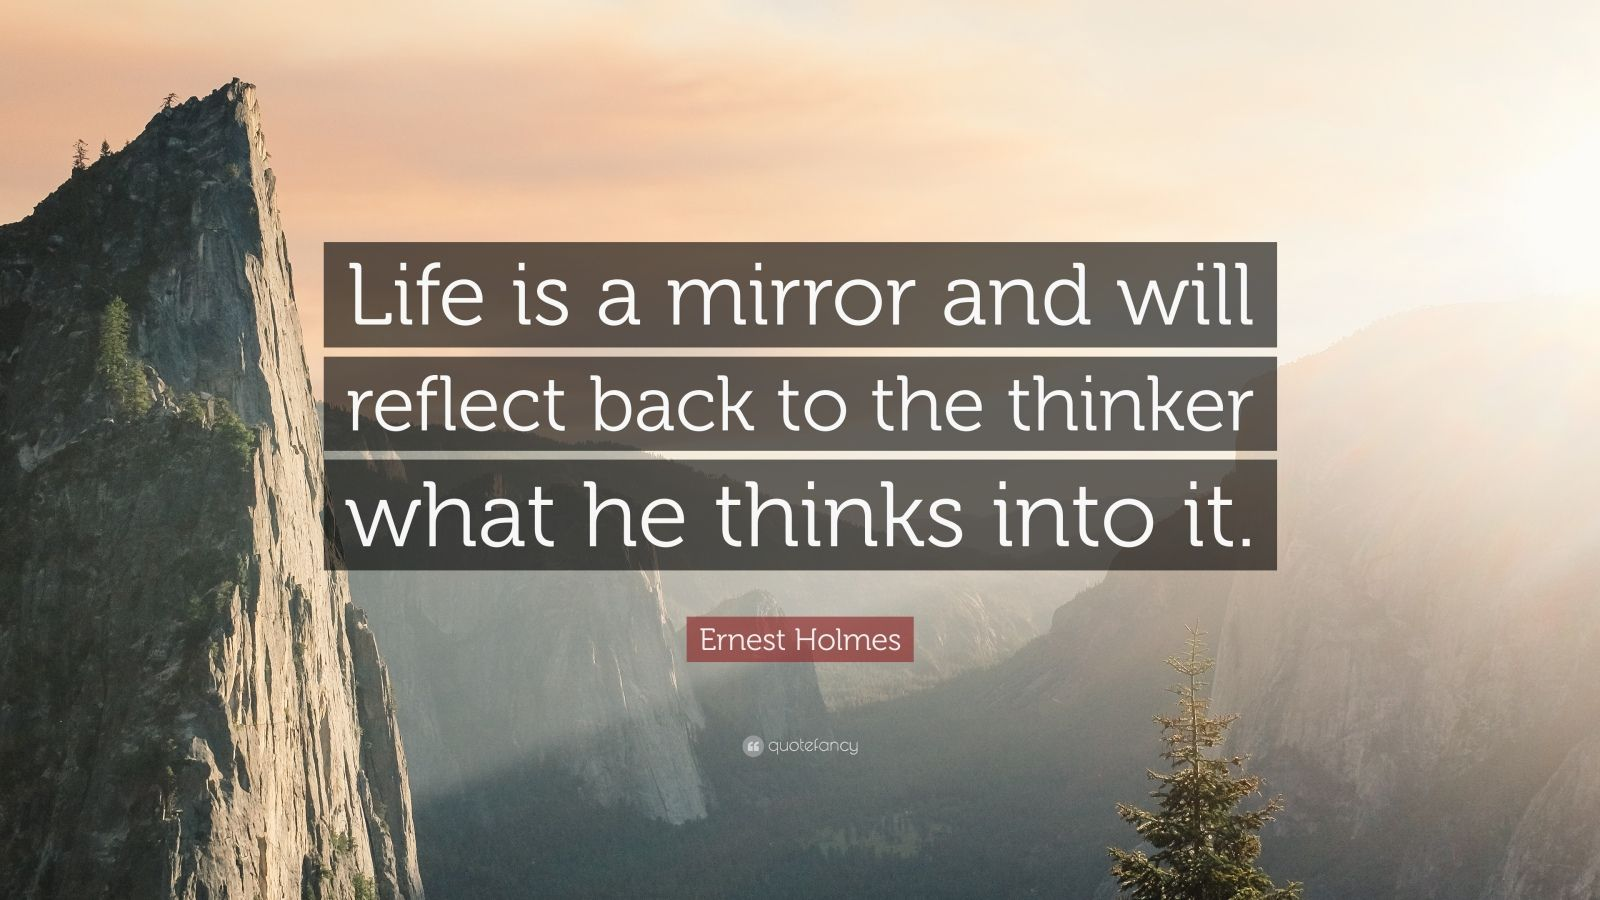 Theodore Roosevelt Wallpaper Quote Ernest Holmes Quote Life Is A Mirror And Will Reflect